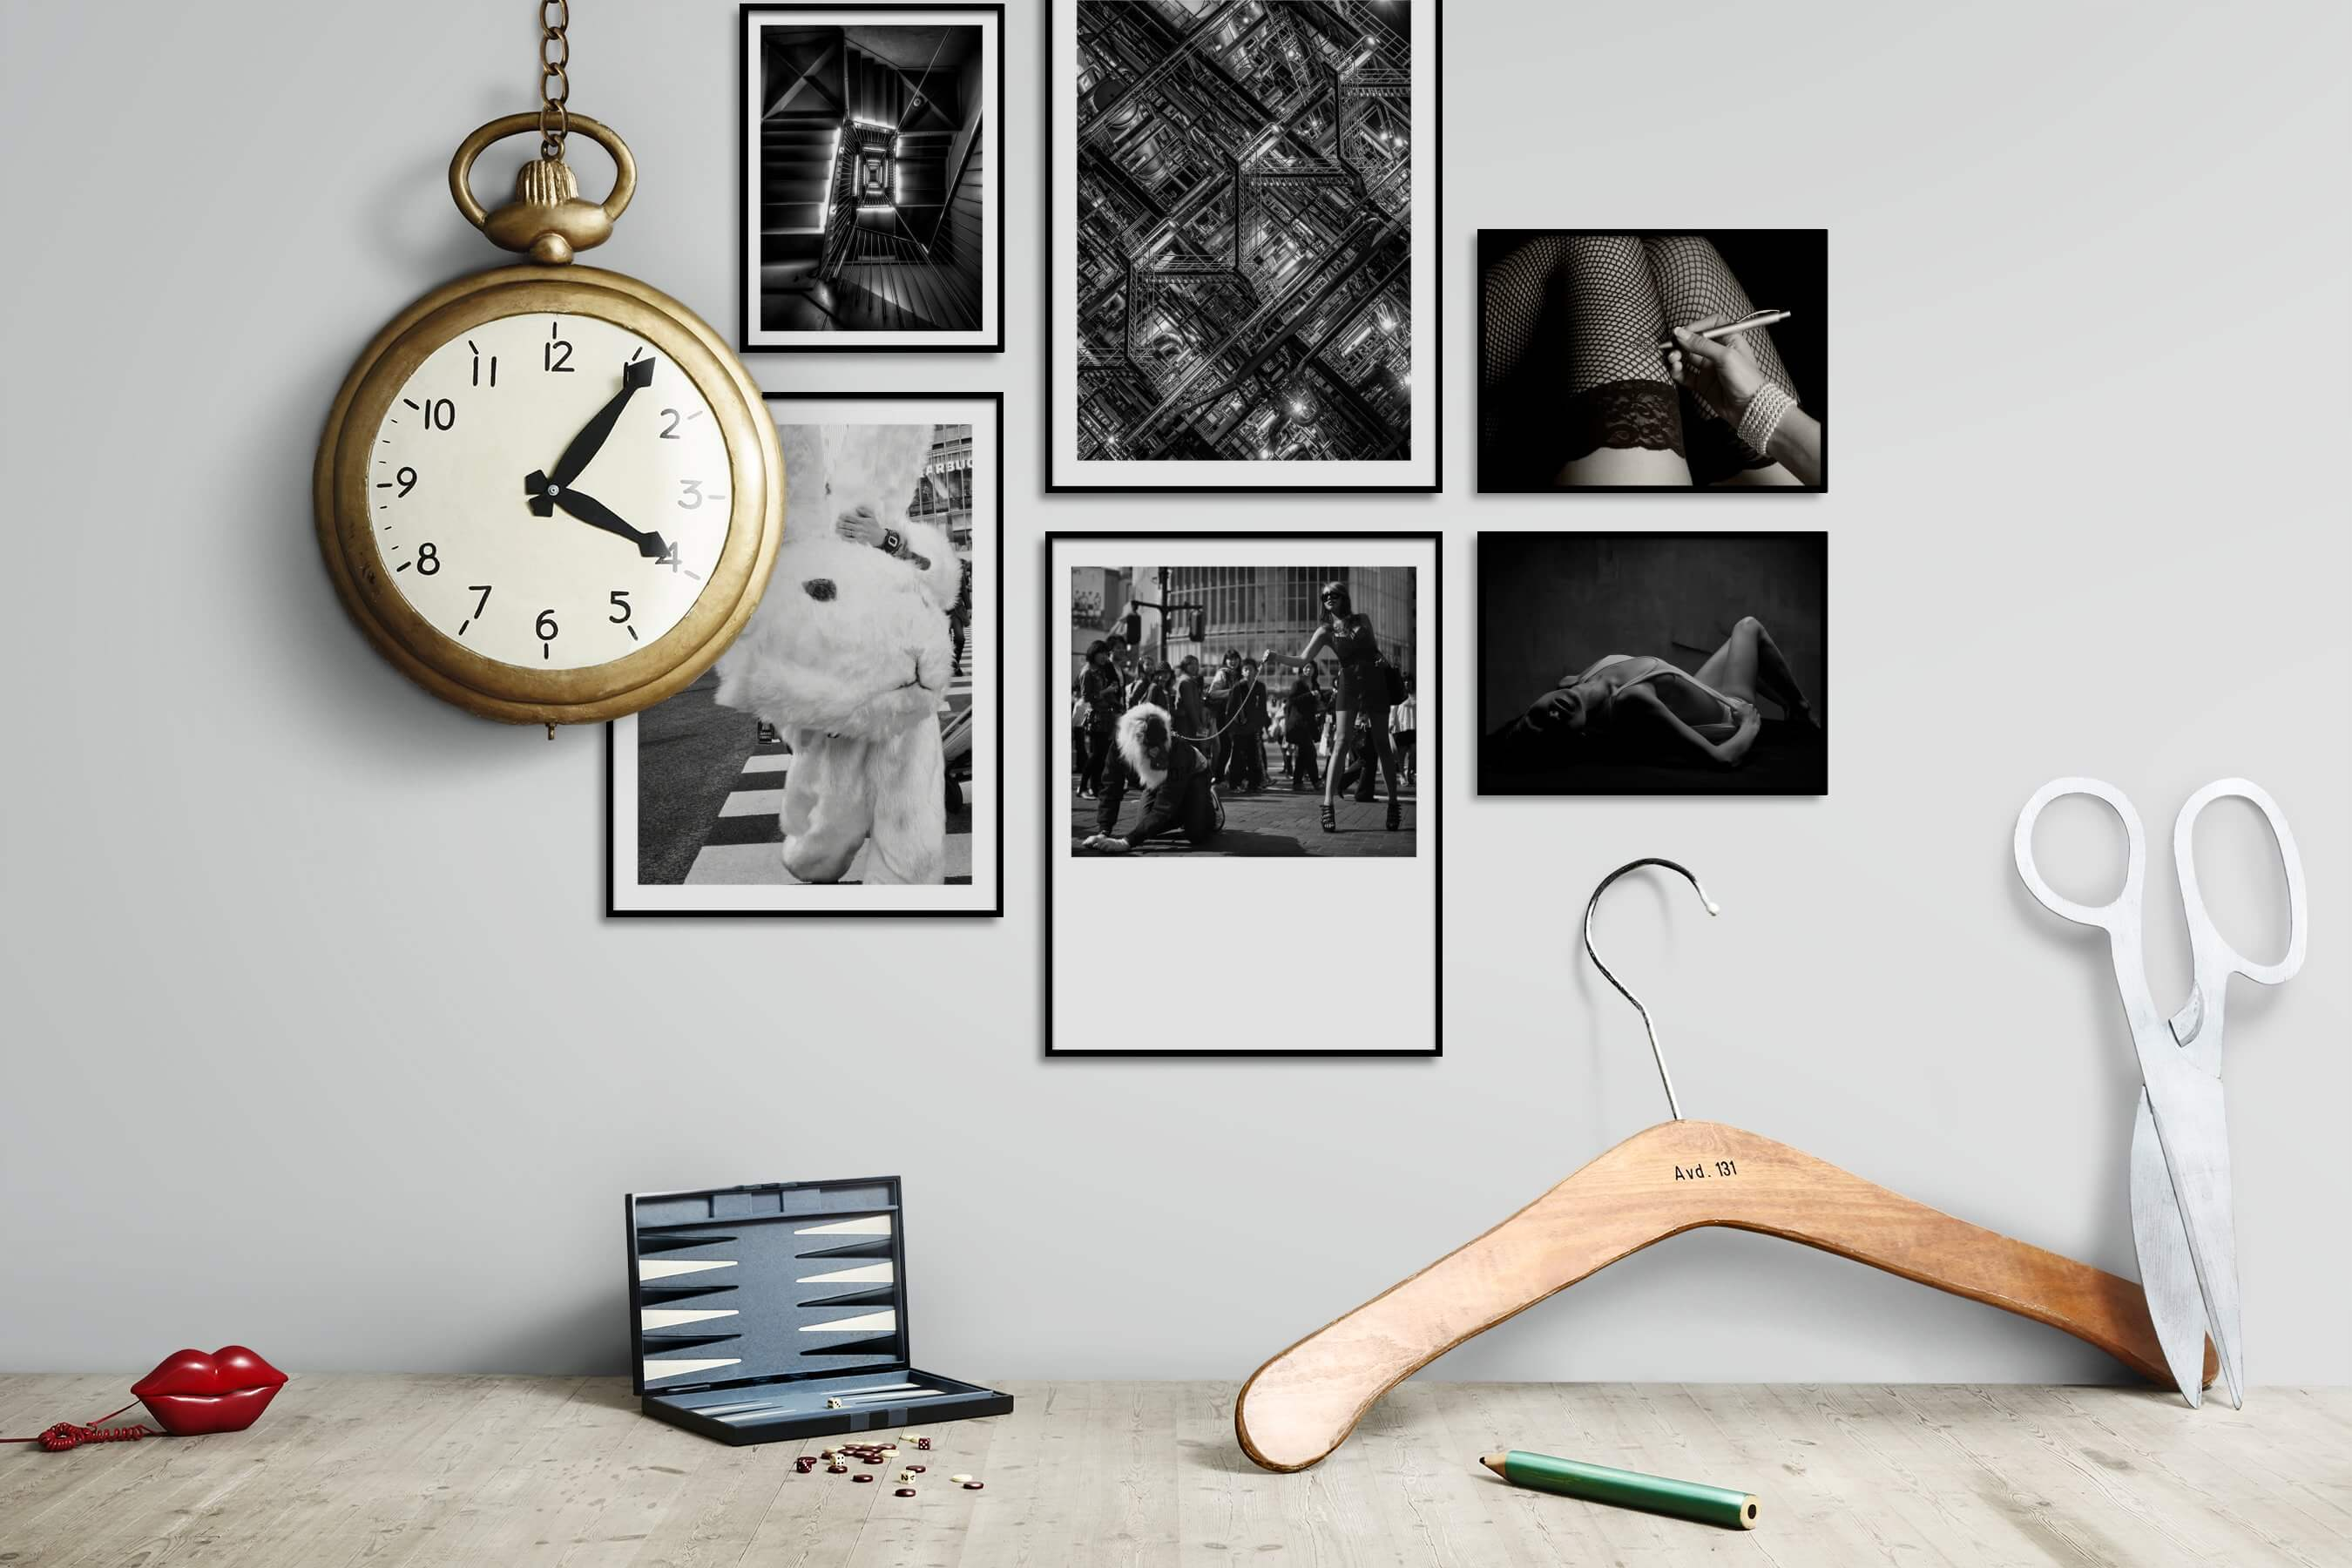 Gallery wall idea with six framed pictures arranged on a wall depicting Black & White, For the Maximalist, Artsy, City Life, and Fashion & Beauty